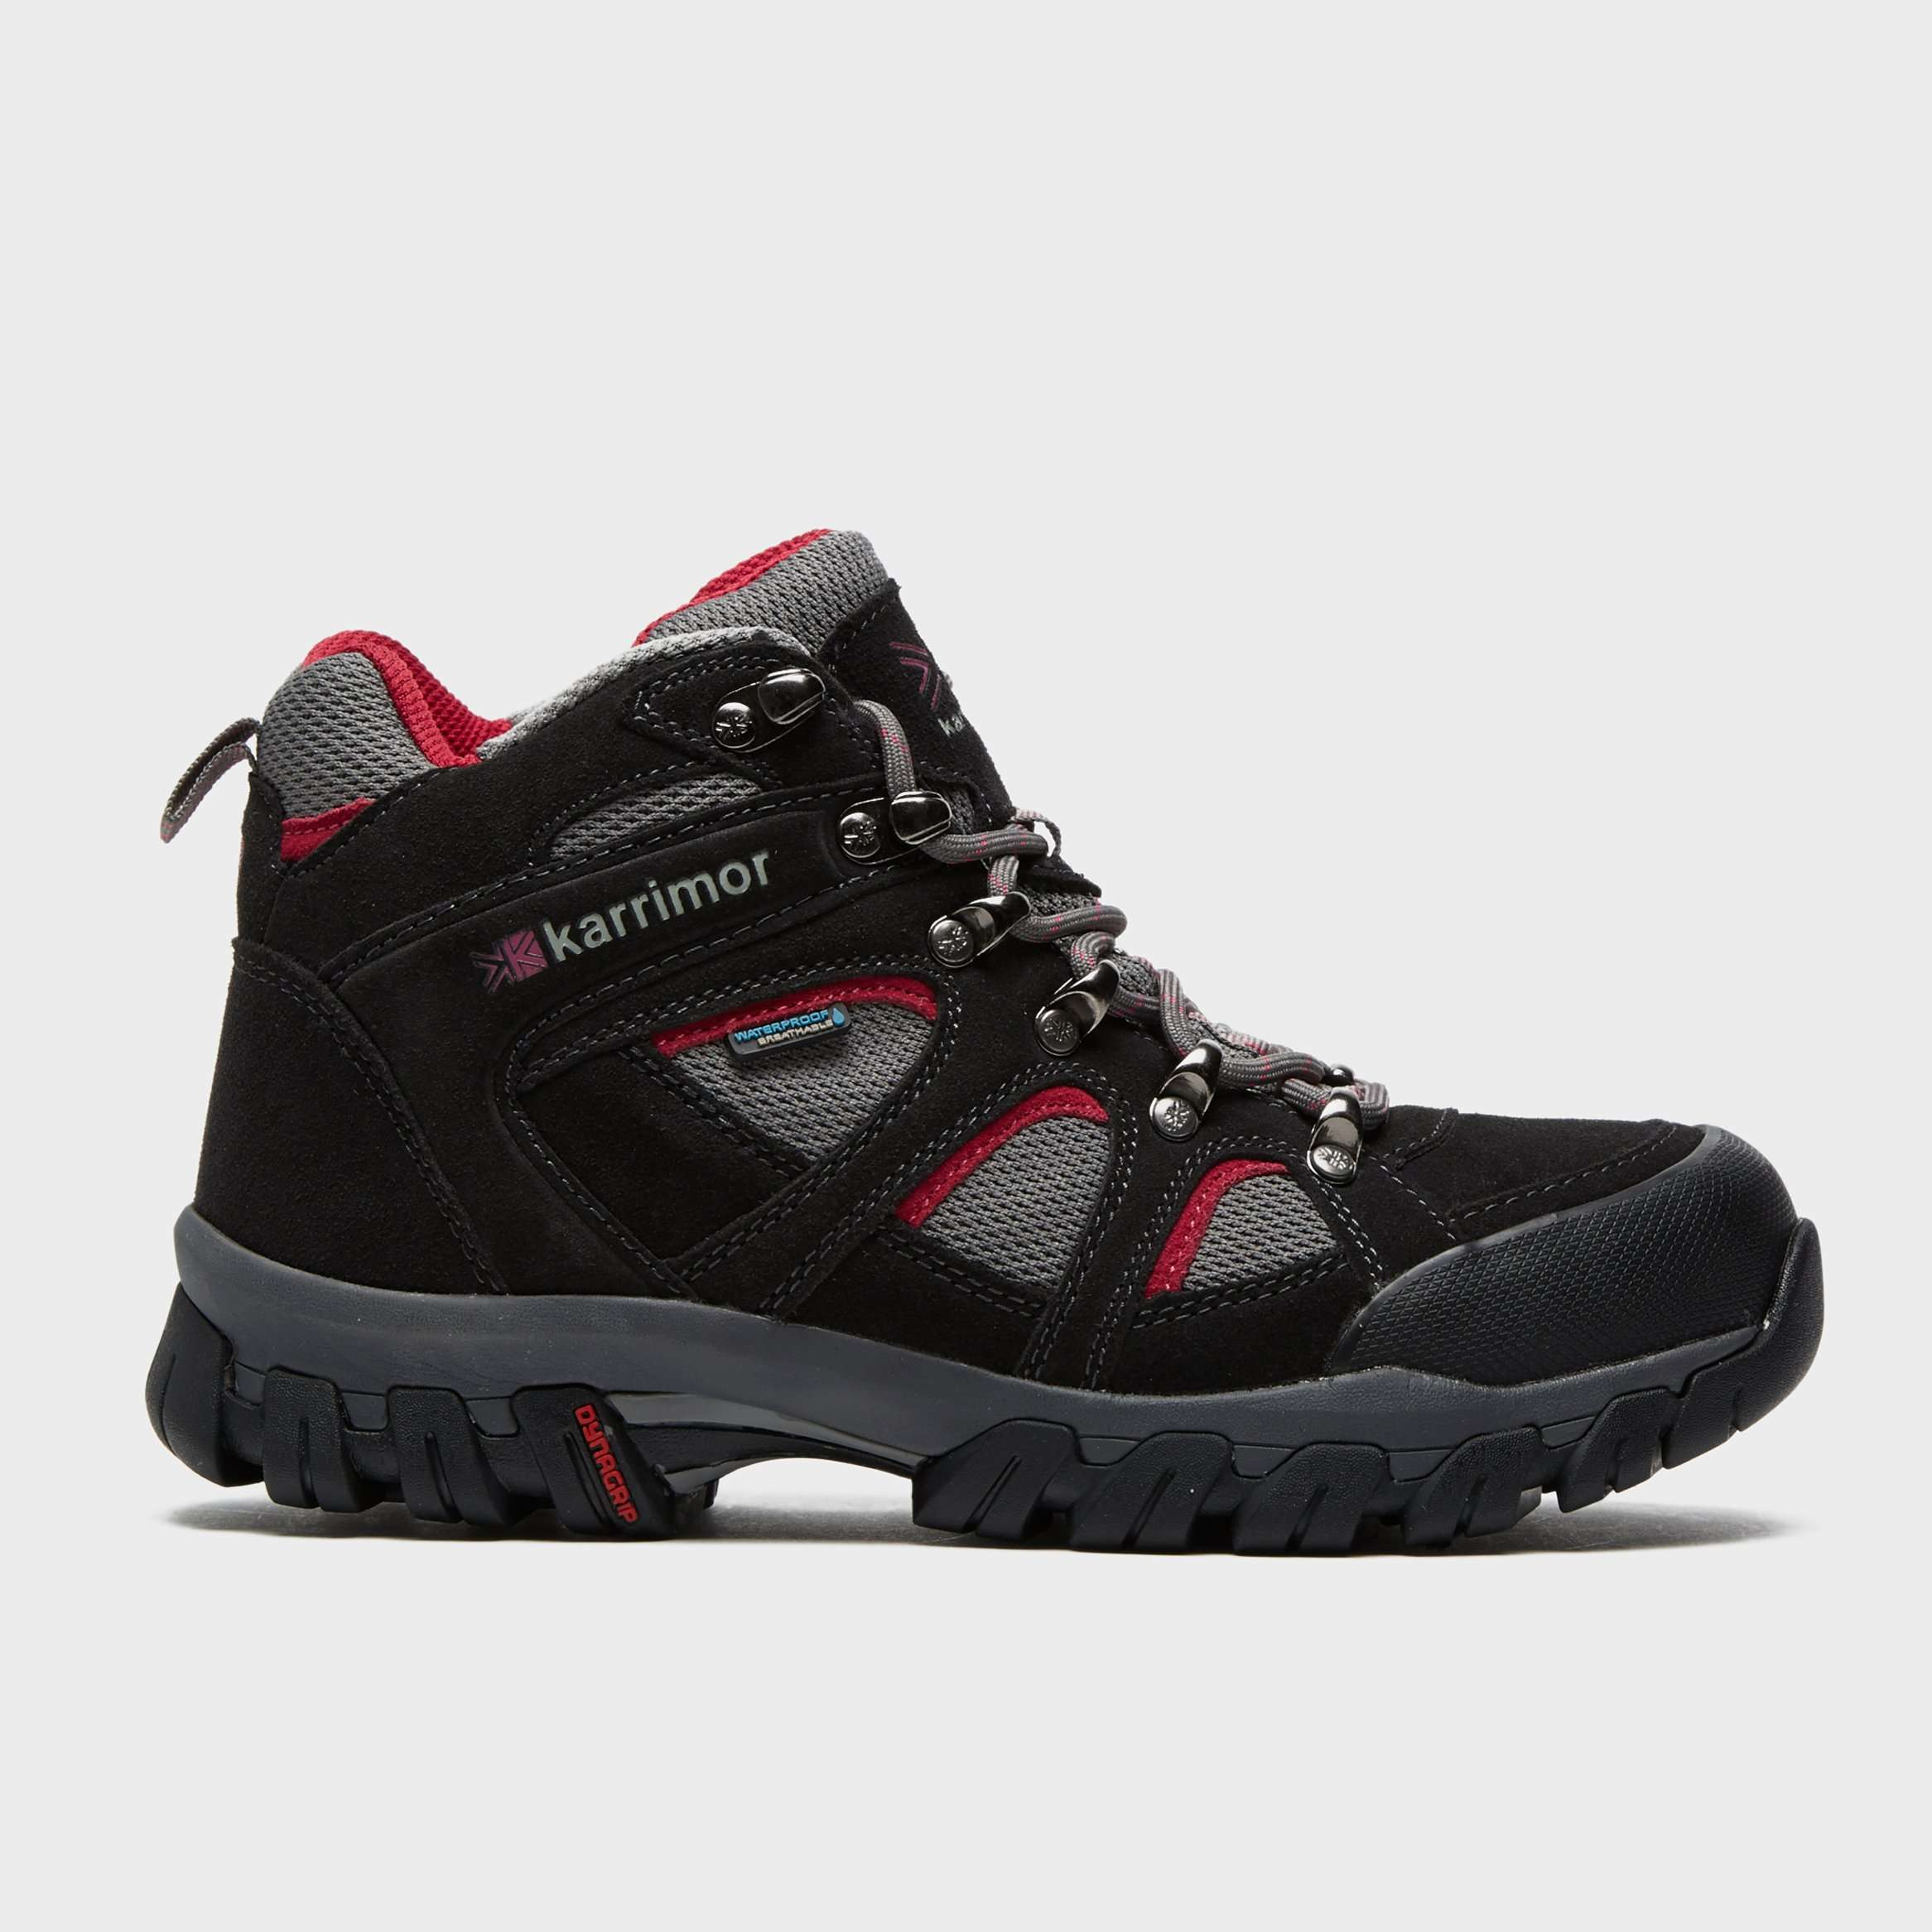 KARRIMOR Women's Bodmin IV Mid Waterproof Walking Boot